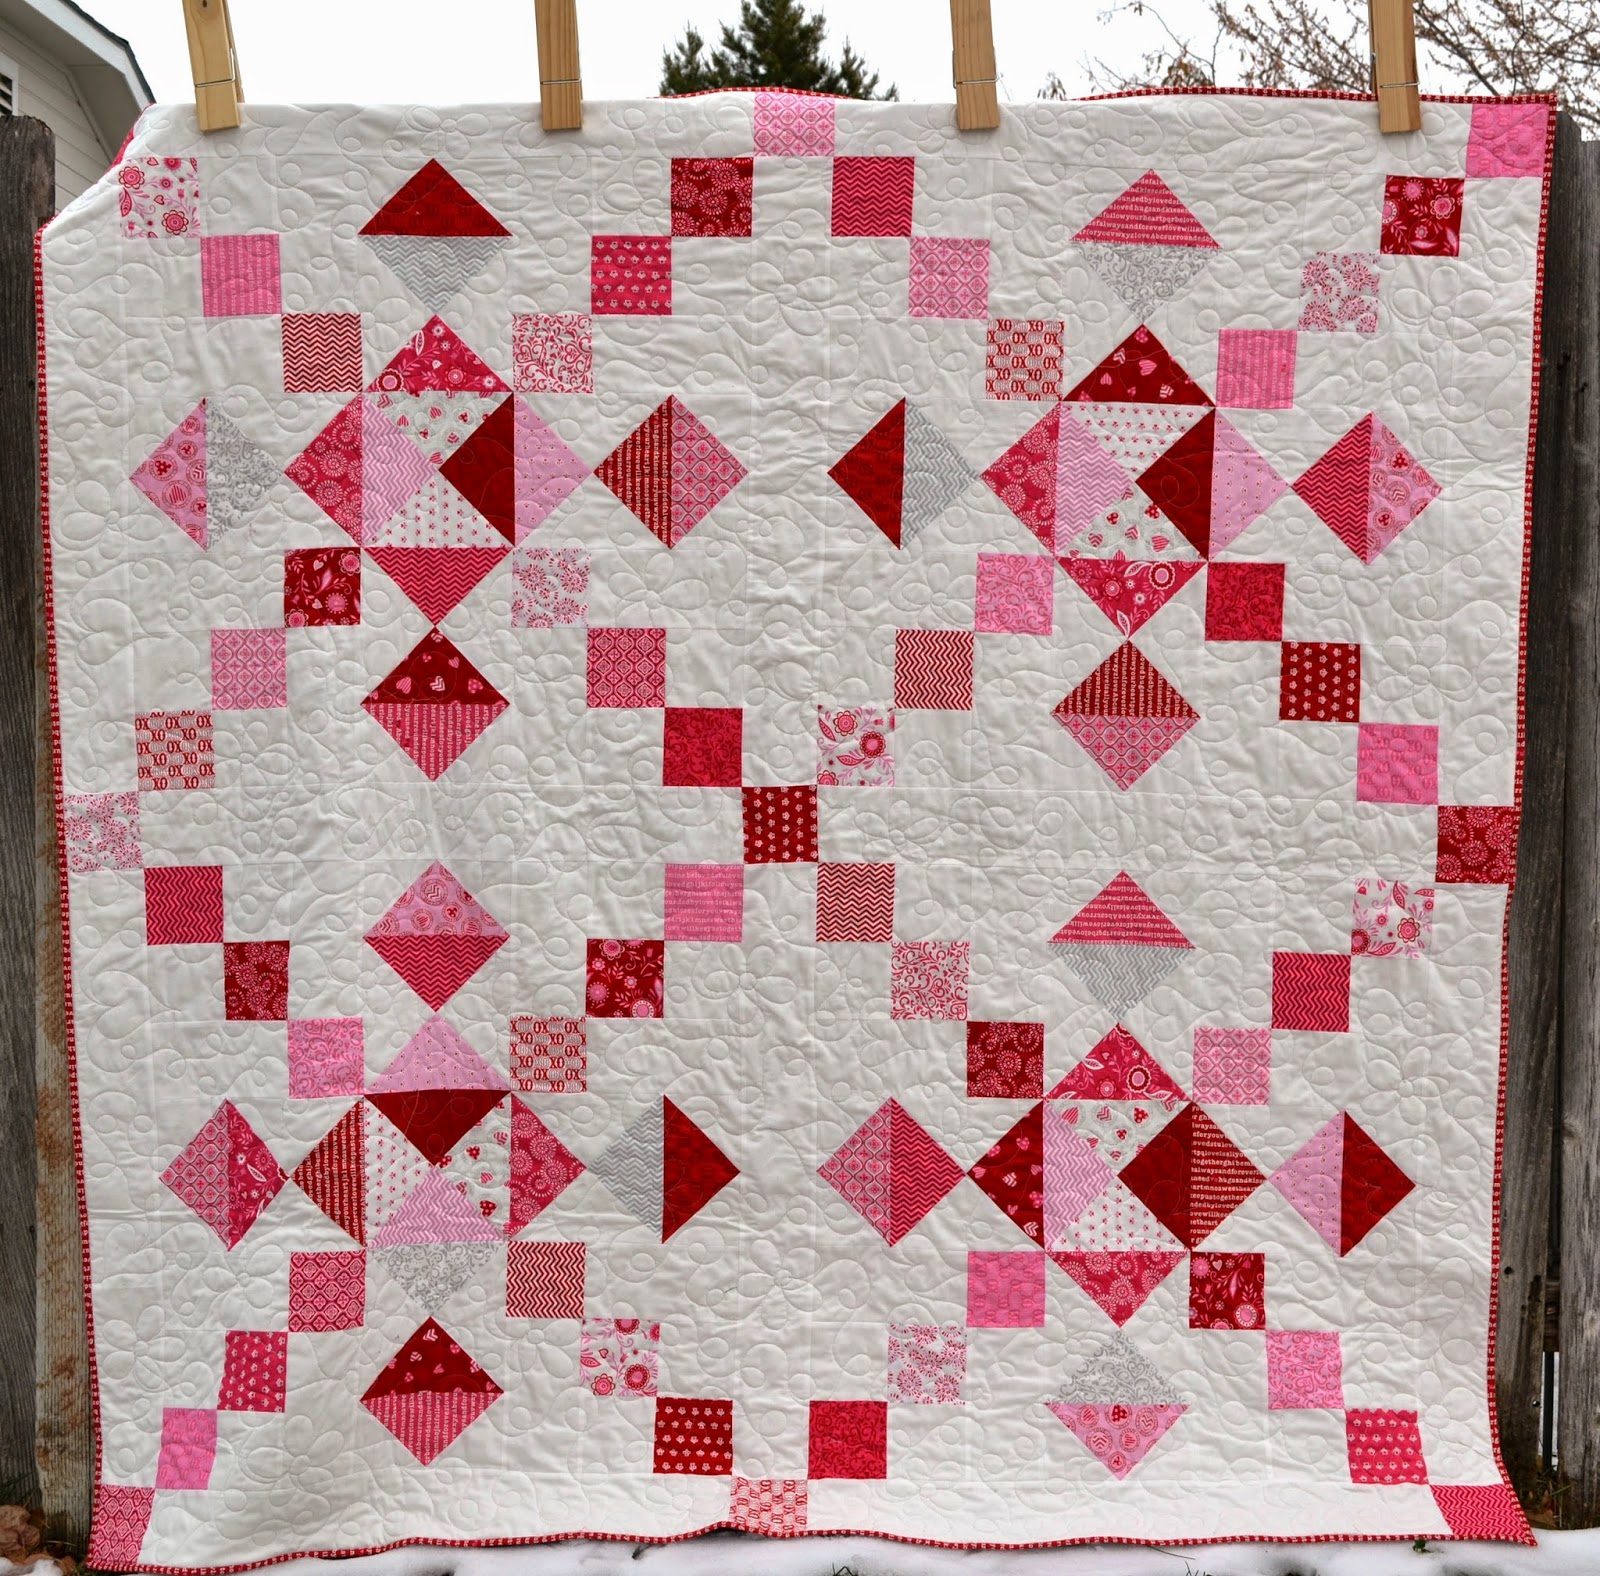 Layer Cake Quilt As You Go : Porch Swing Quilts: Layer Cake Quilts